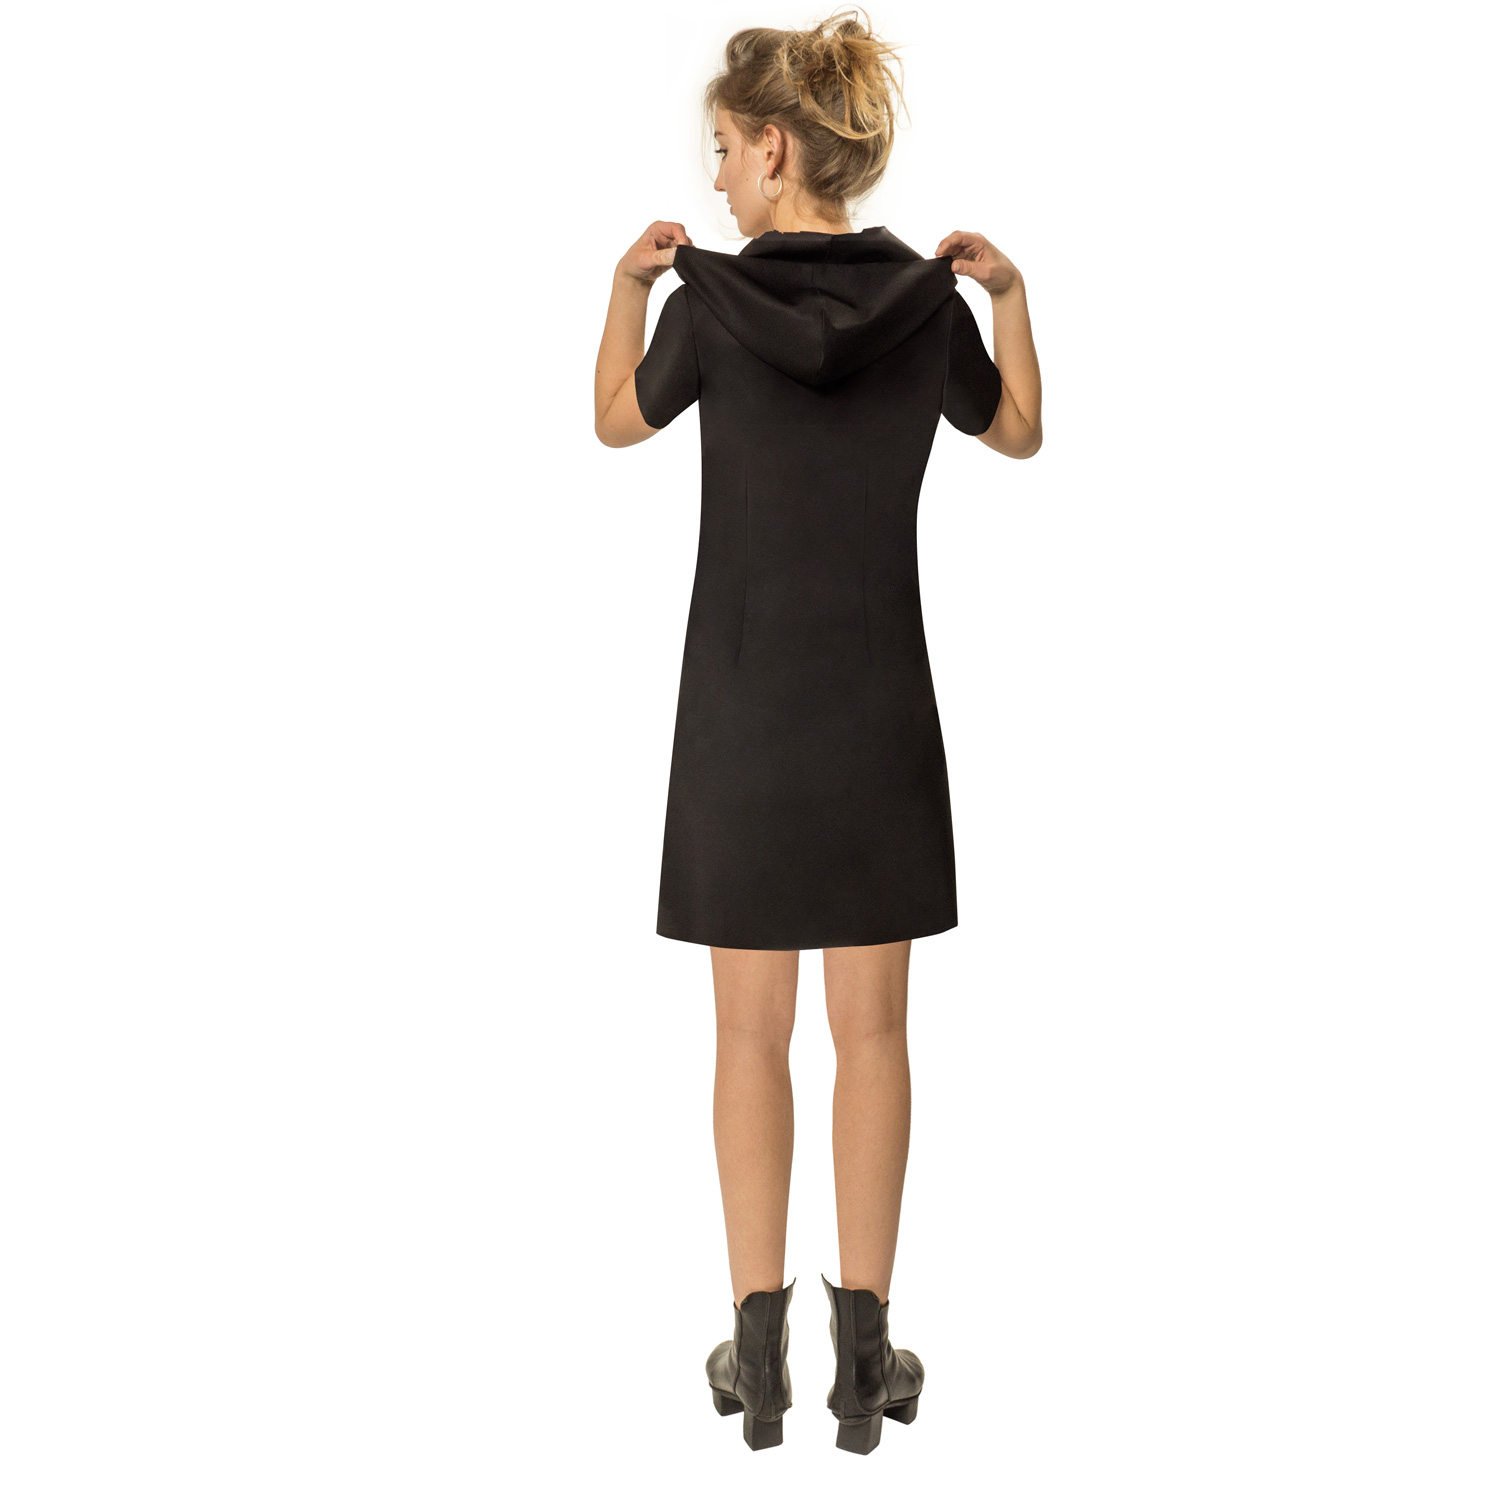 dress elegance shortsleeve black back